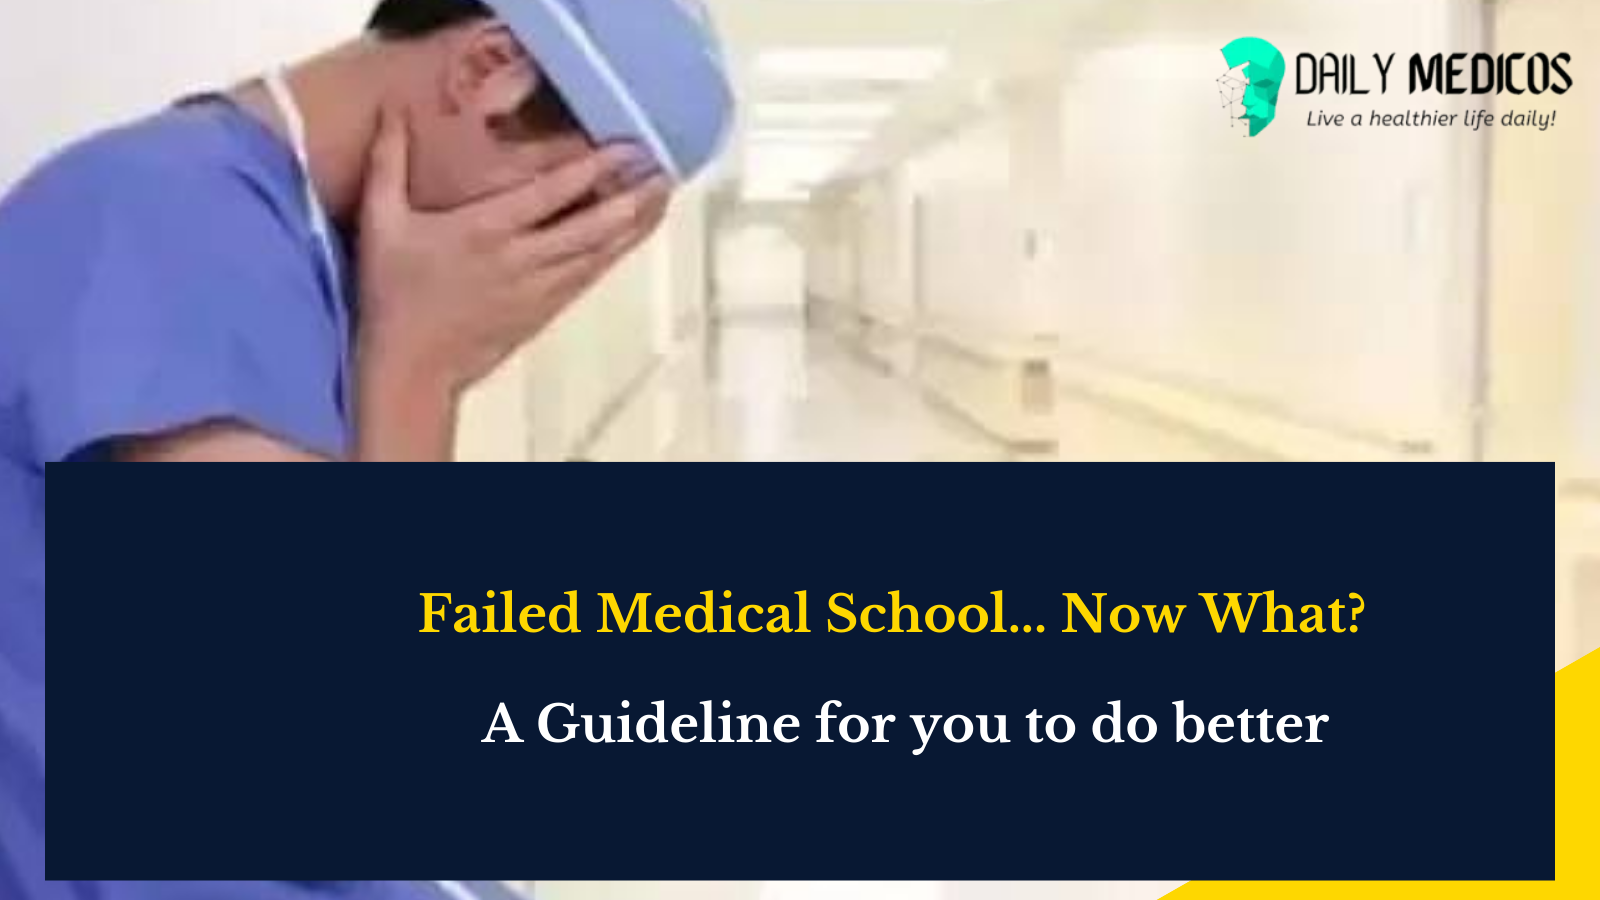 Failed Medical School... Now What? A Guideline for you to do better 1 - Daily Medicos